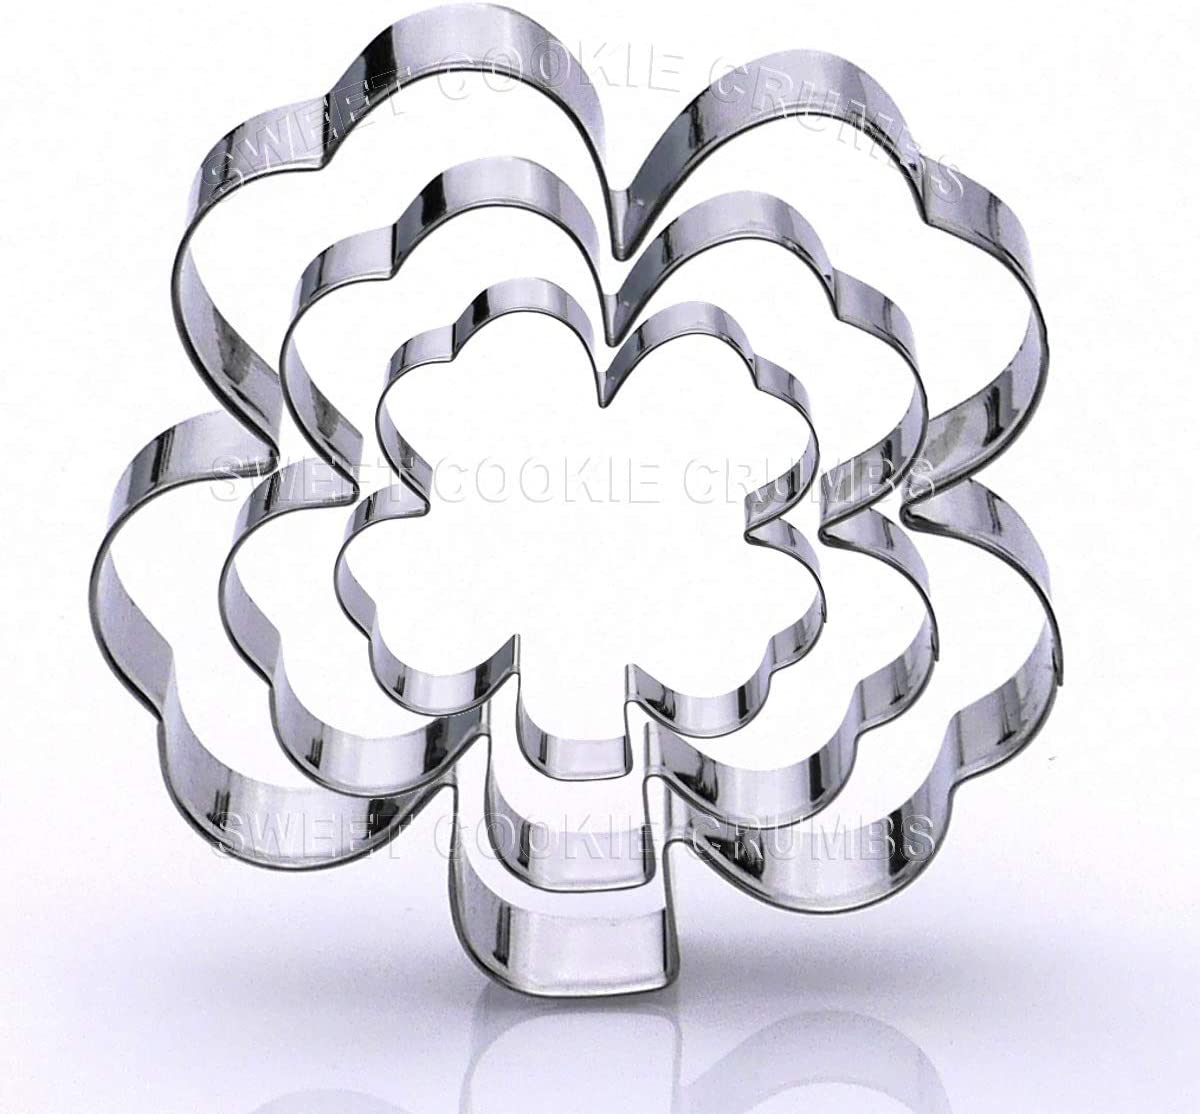 Clover Cookie Cutter Set, 3 Piece, Stainless Steel